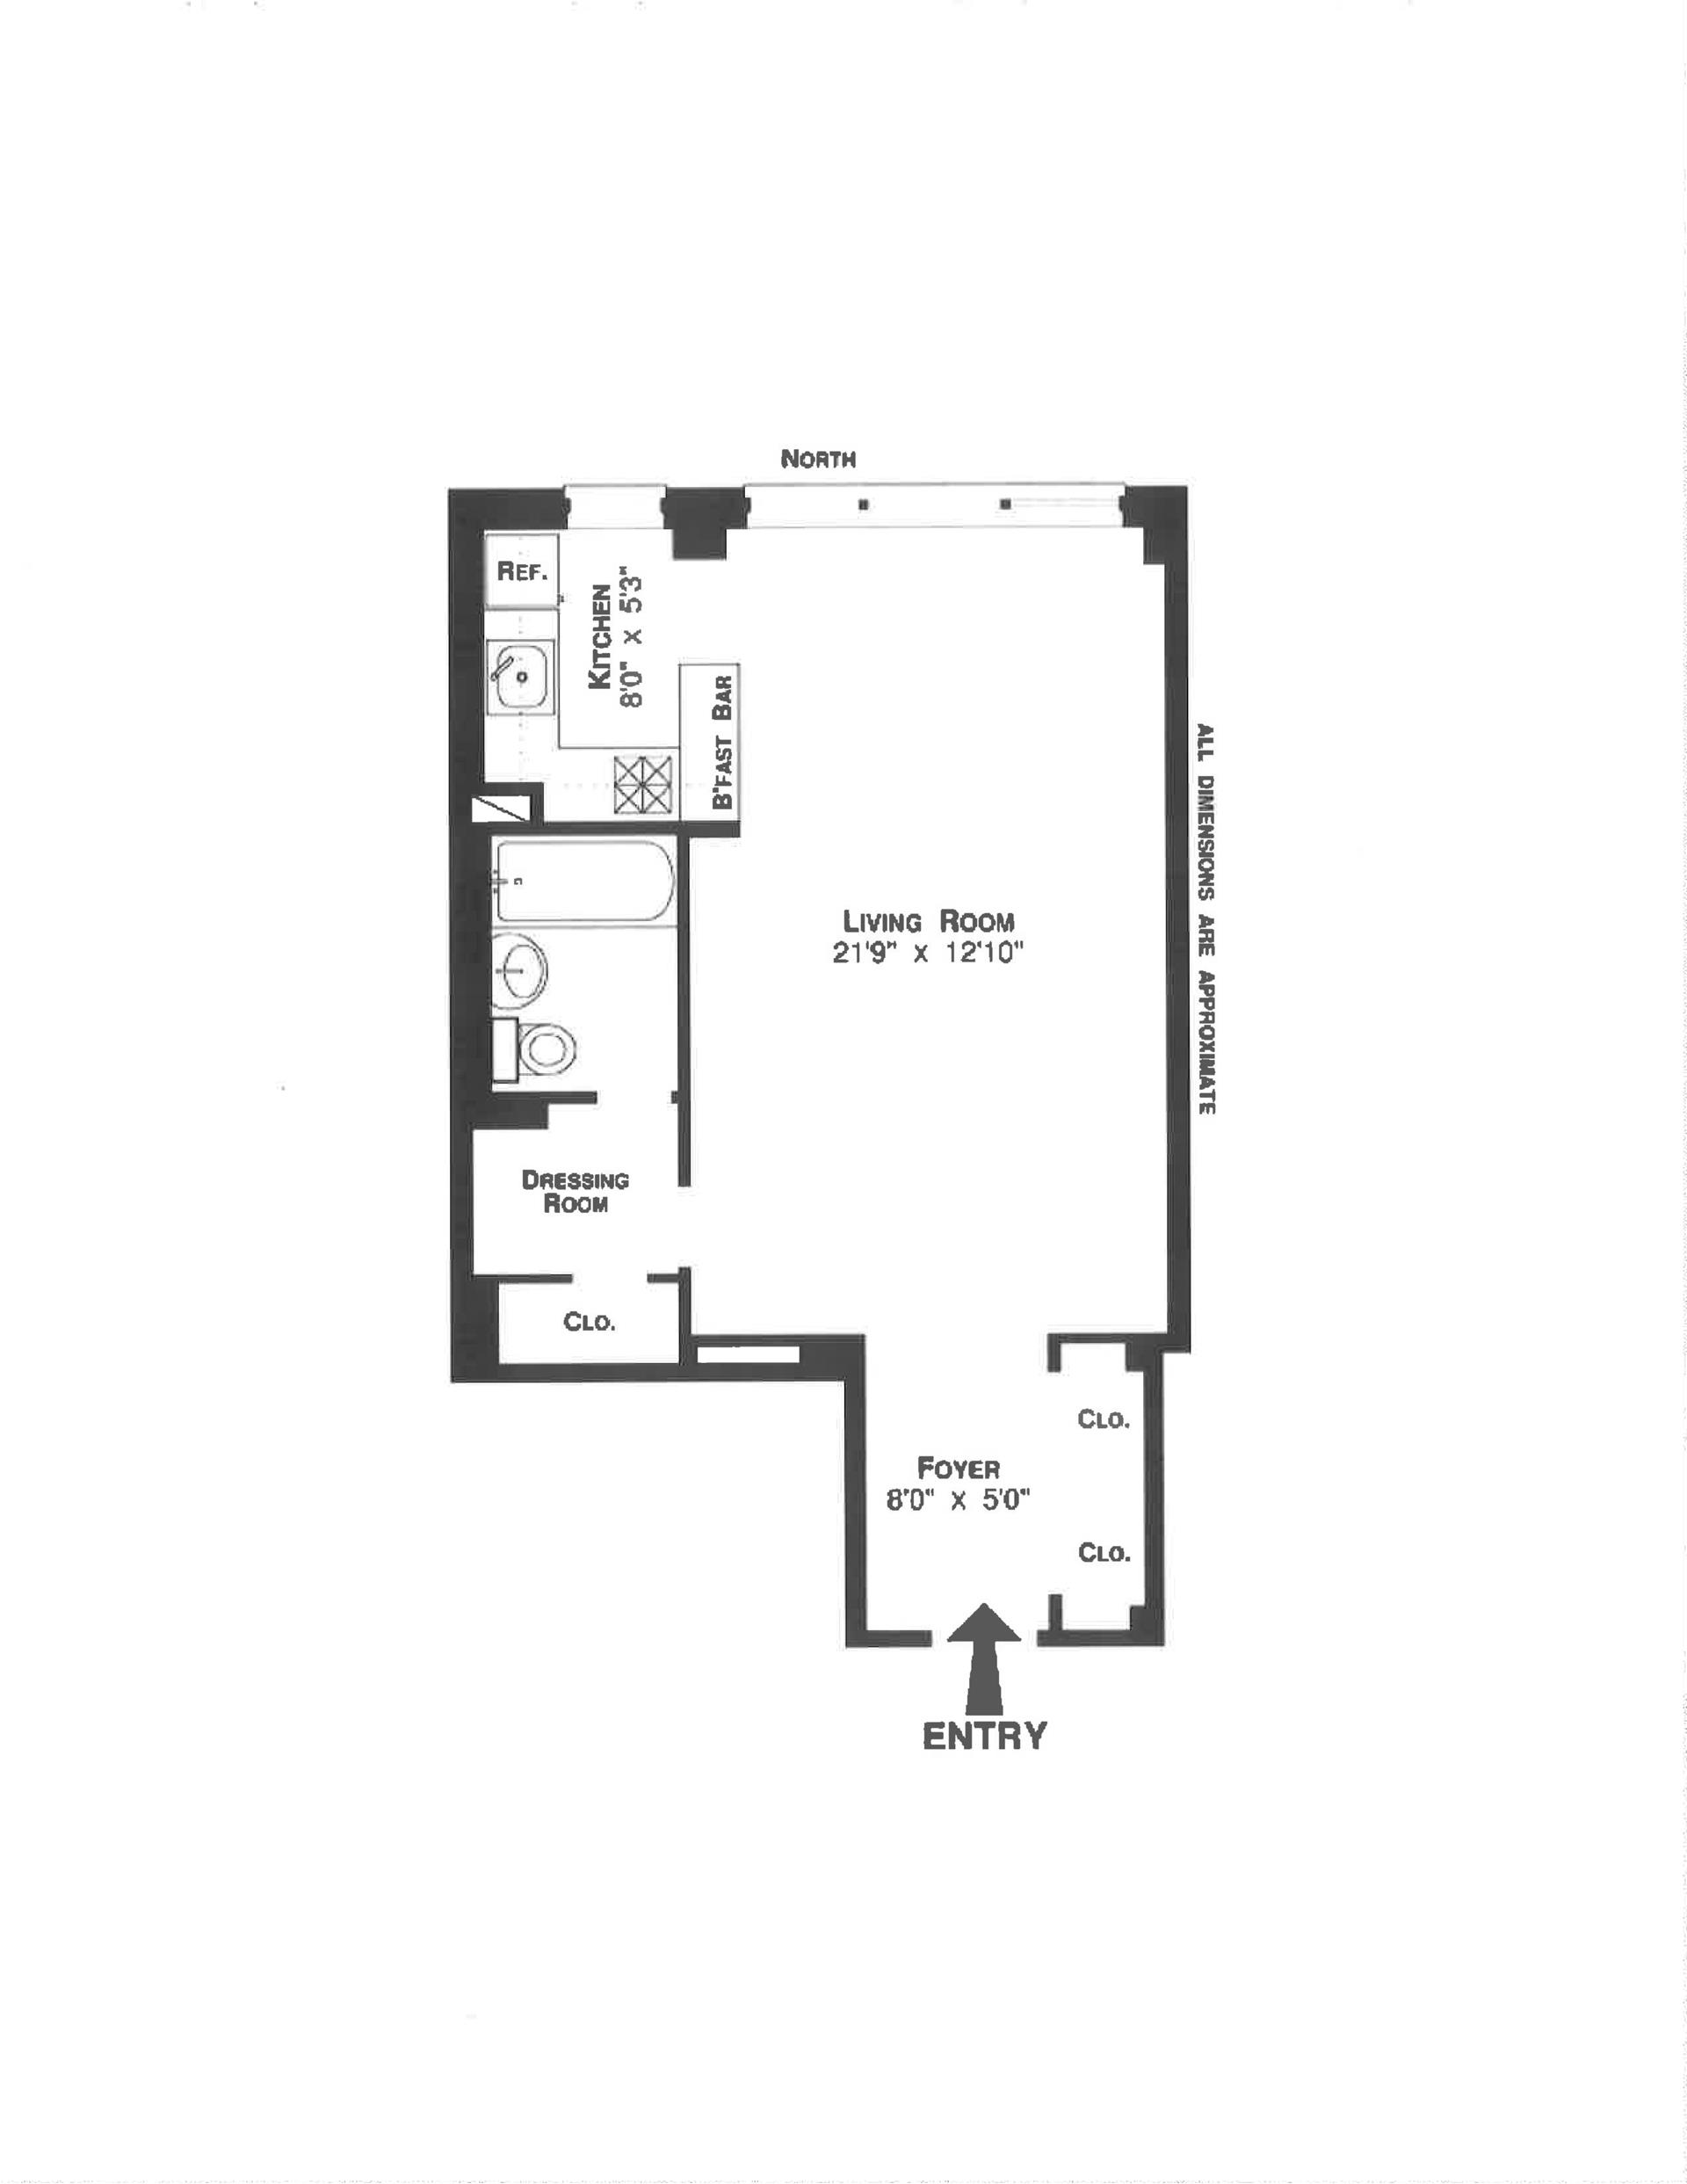 Floor plan of 405 East 63rd St, 8A - Upper East Side, New York